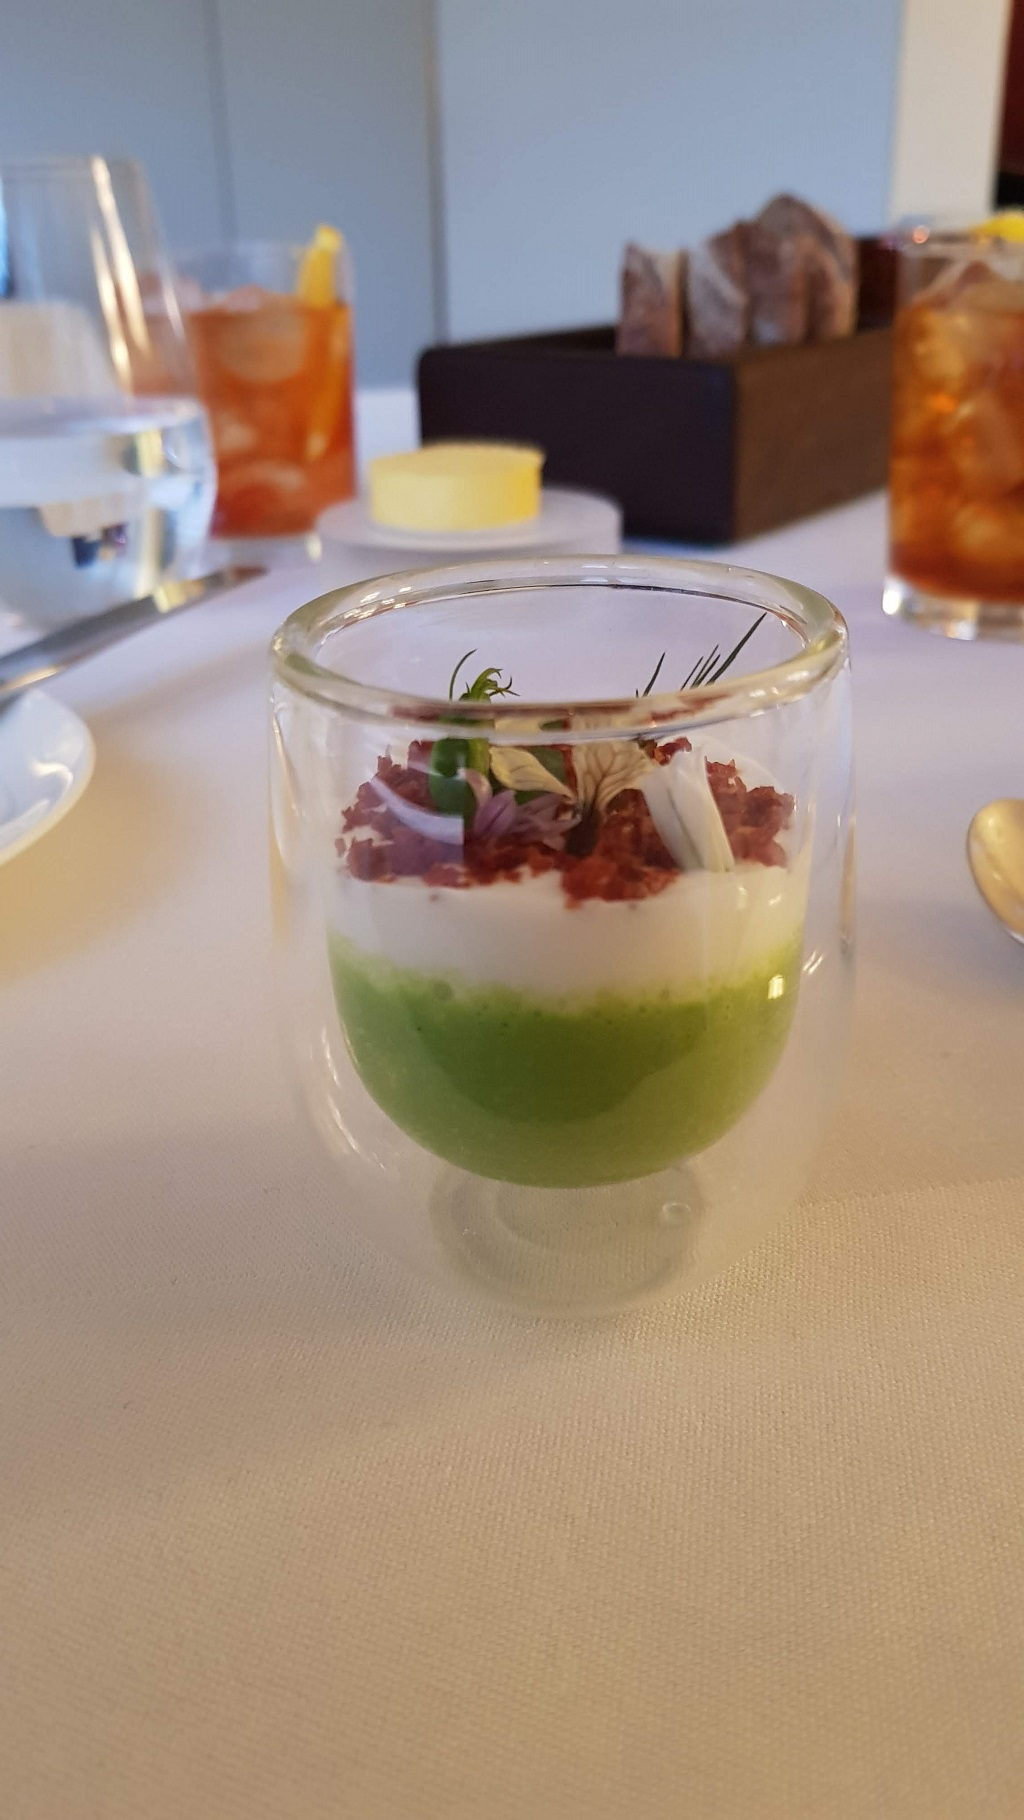 pea veloute with buttermilk foam at Petrus restaurant